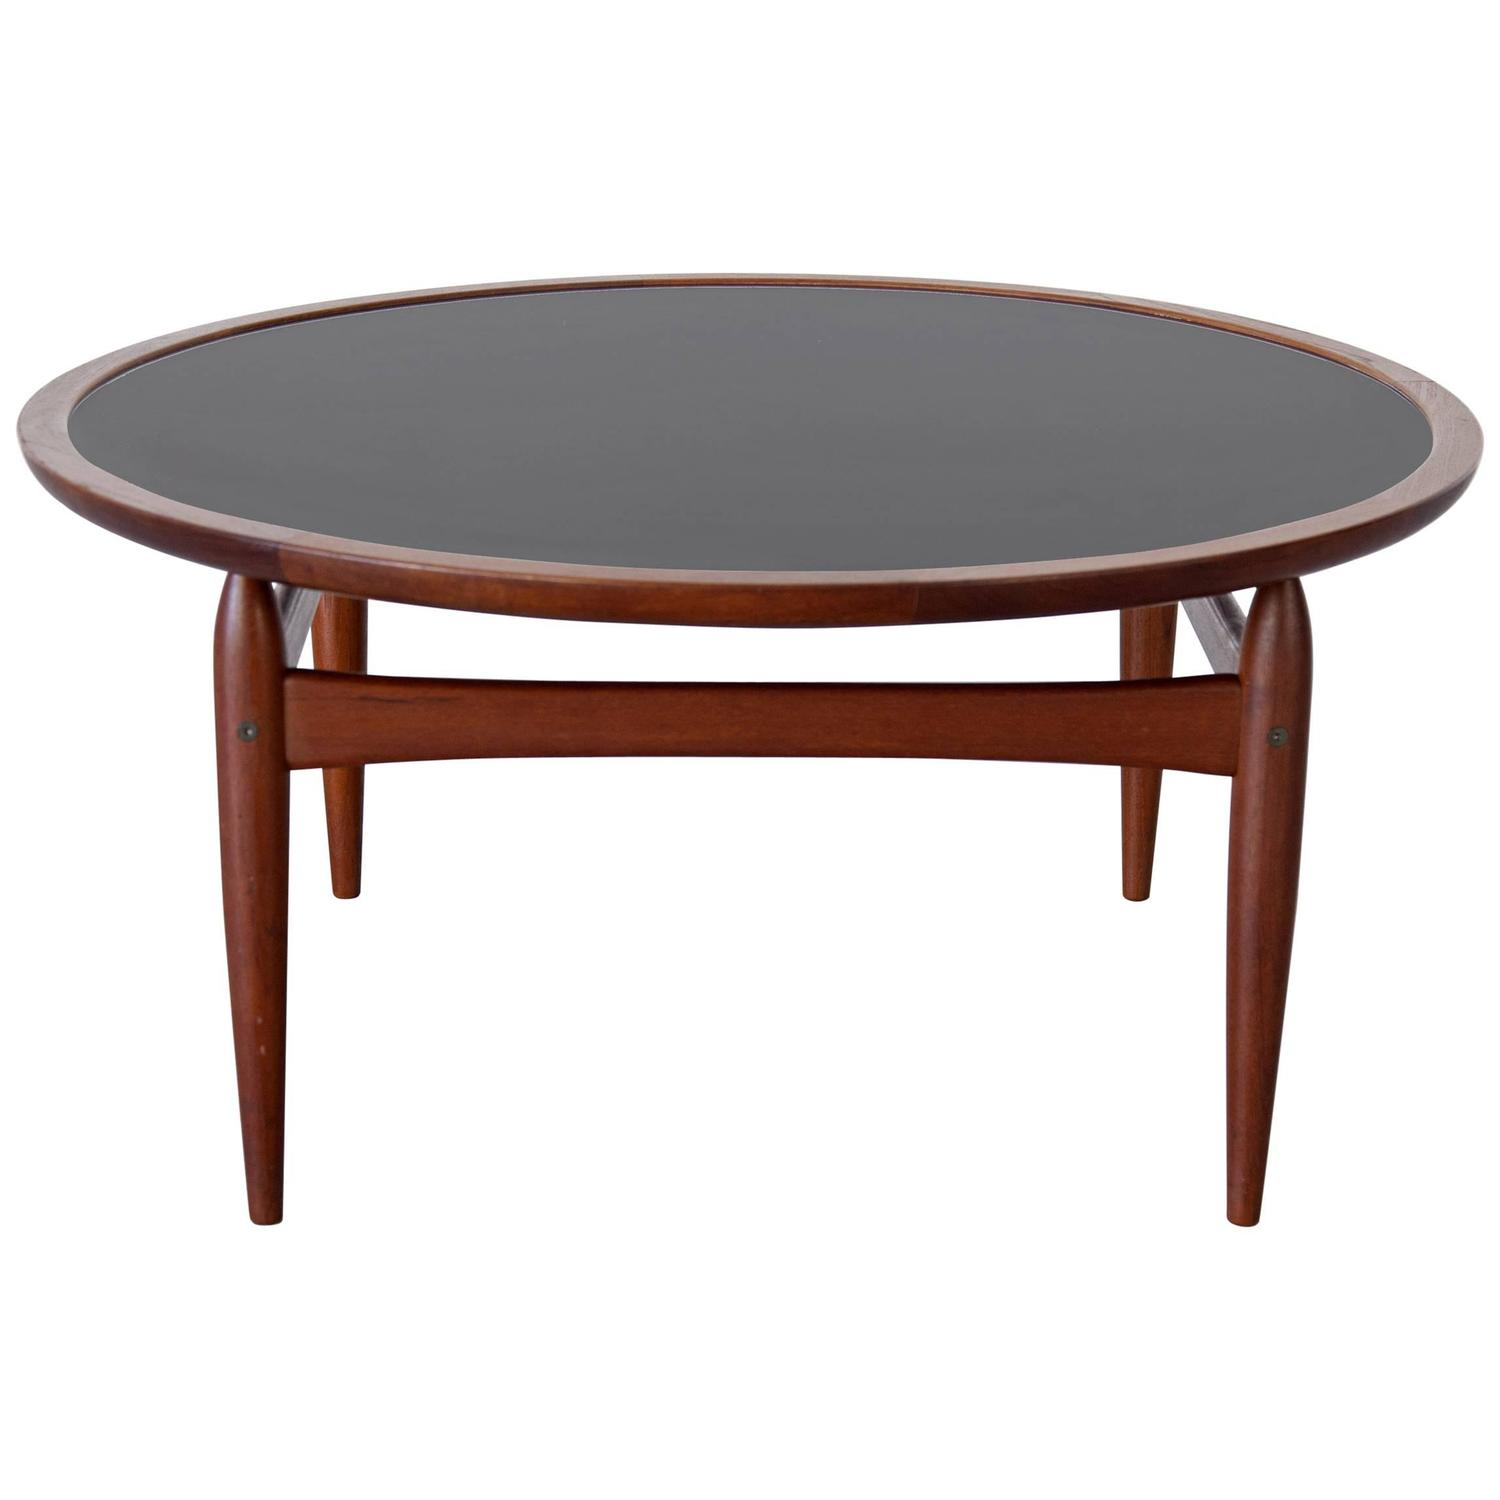 Kurt ˜stervig Teak Coffee Table with Reversible Top Made by Jason